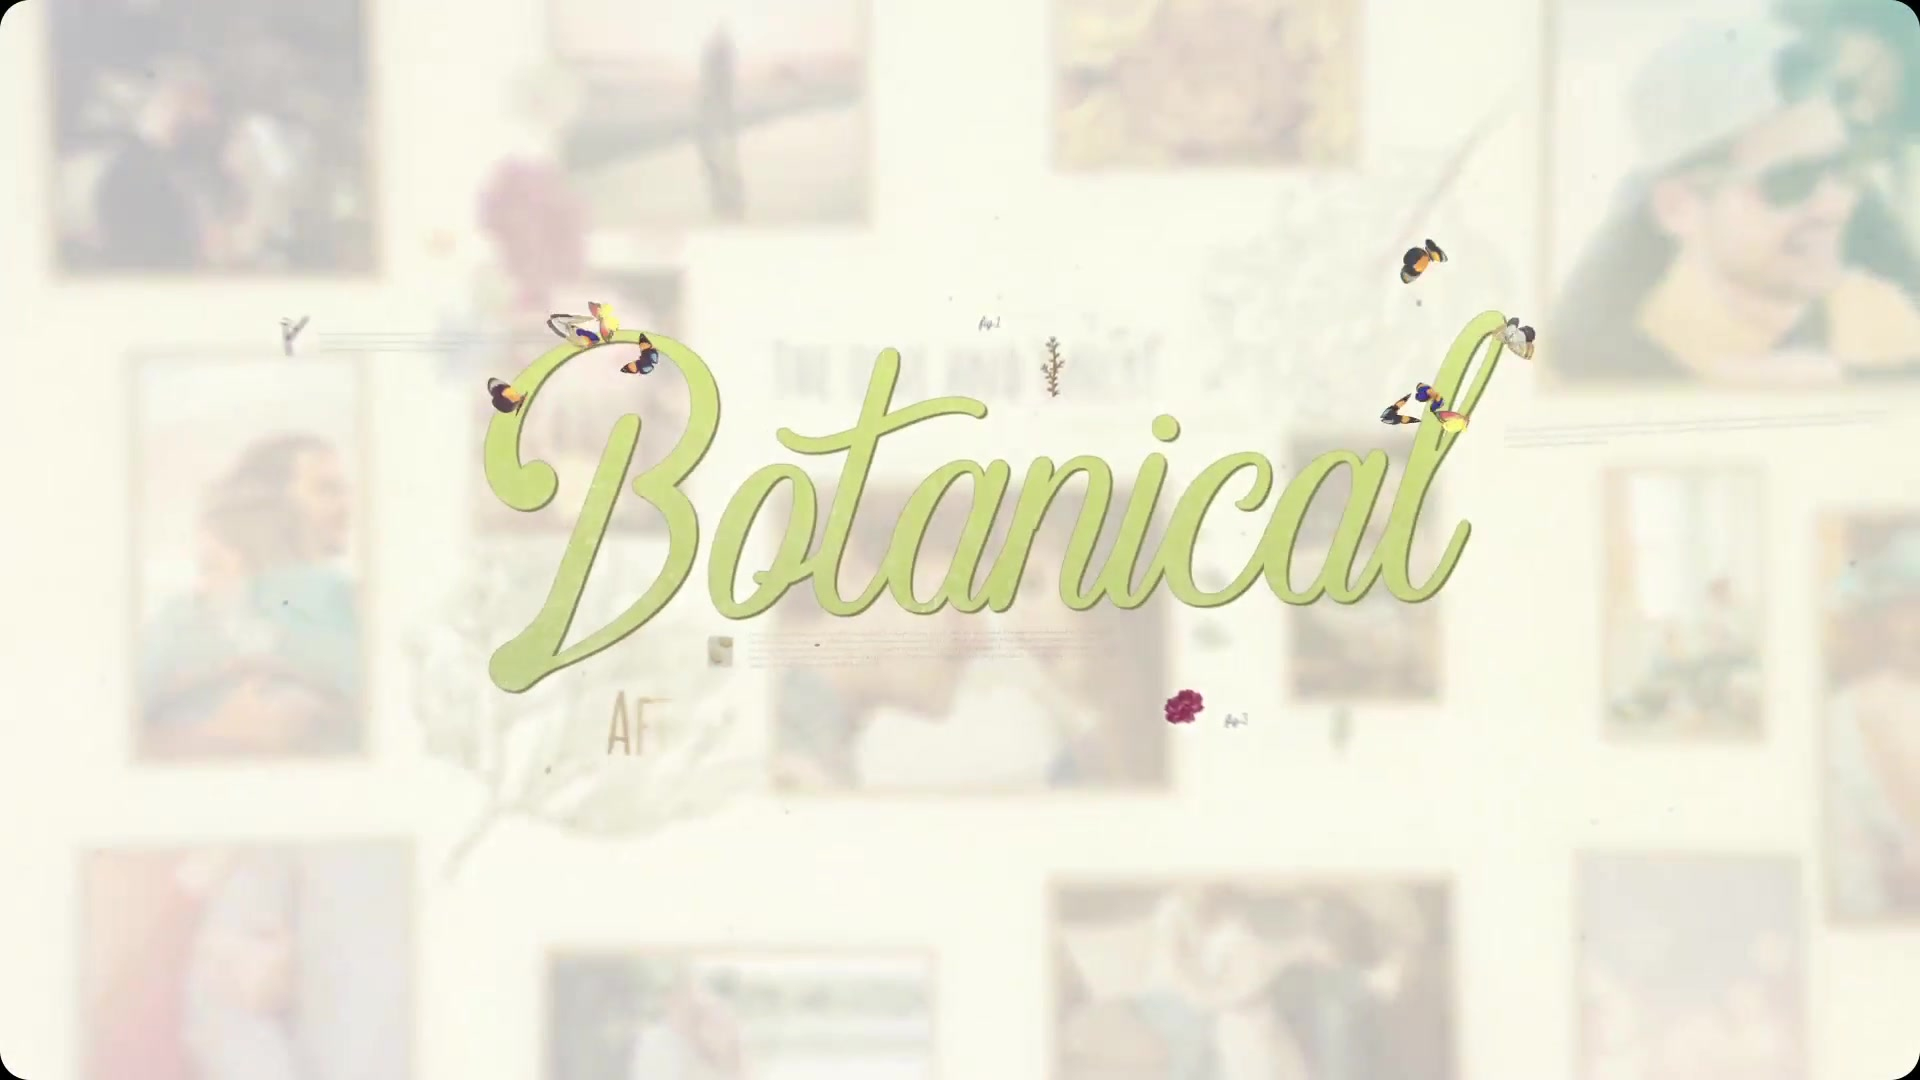 Botanical Slideshow Wedding, Love Story, Family Album - Download Videohive 22525749